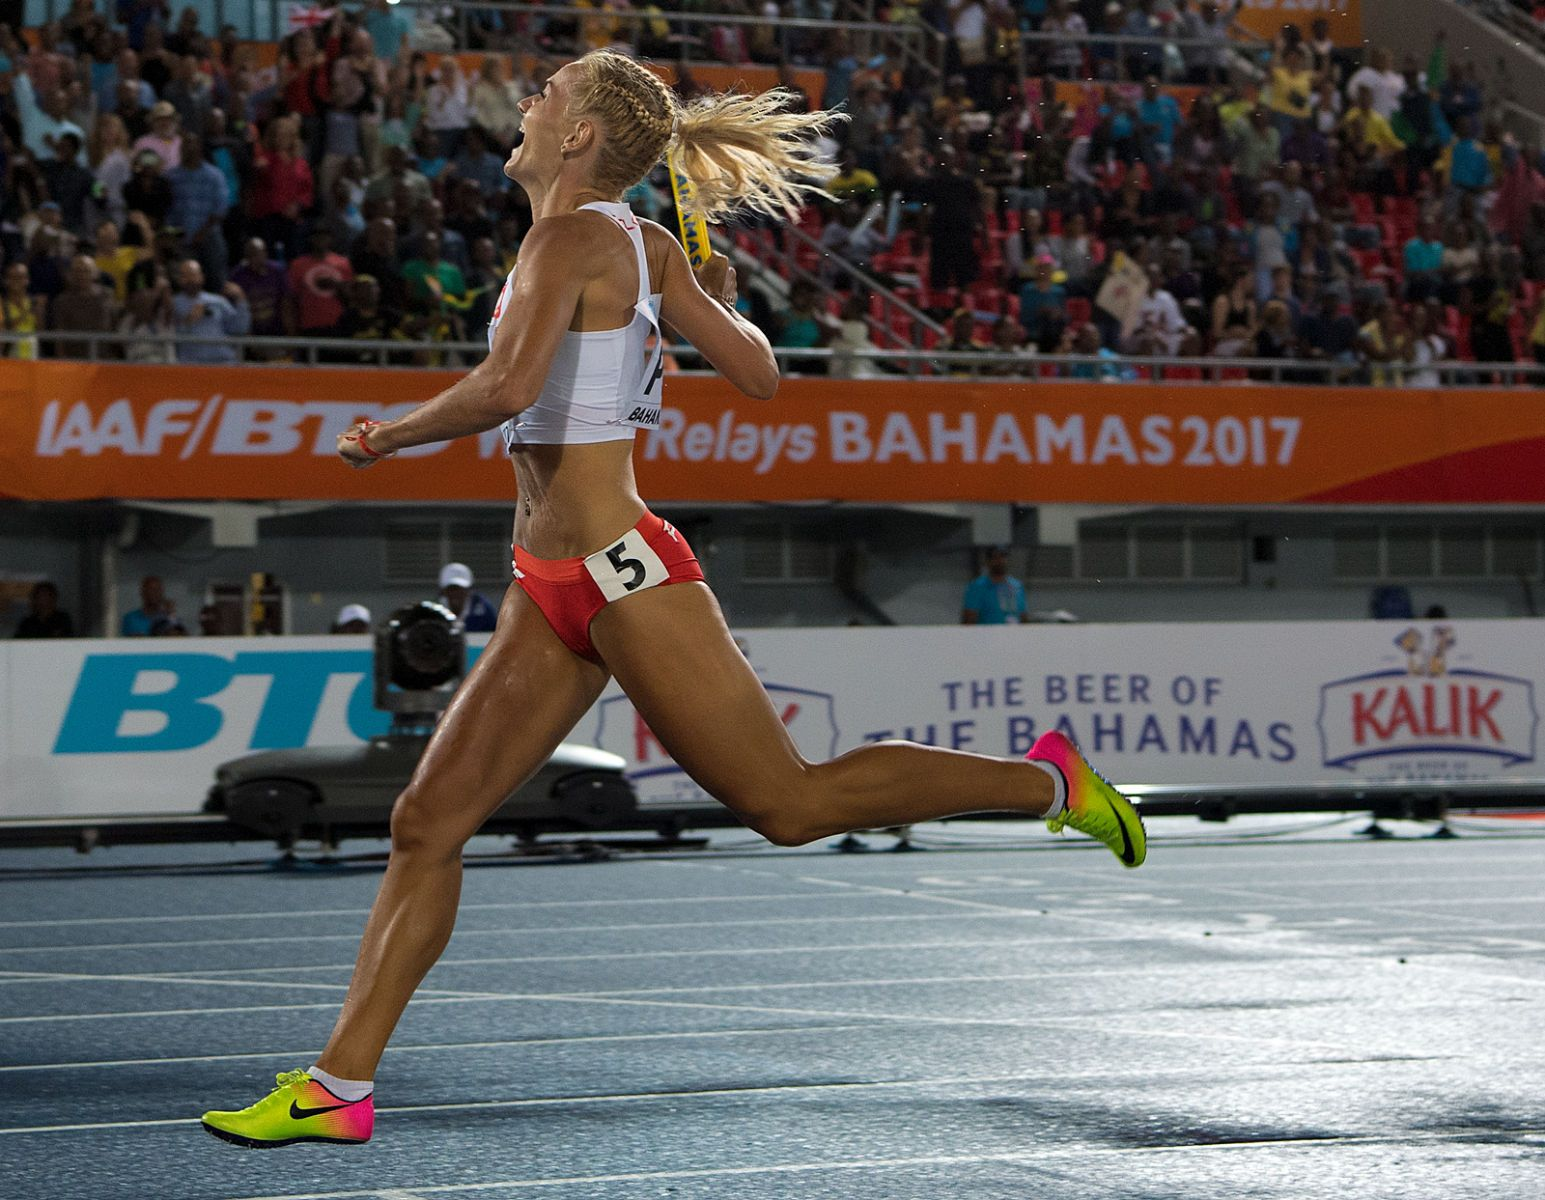 1r2017_bahamas_relays_day_2__sweity_poland_4x400____jeff_cohen_photo__799.jpg